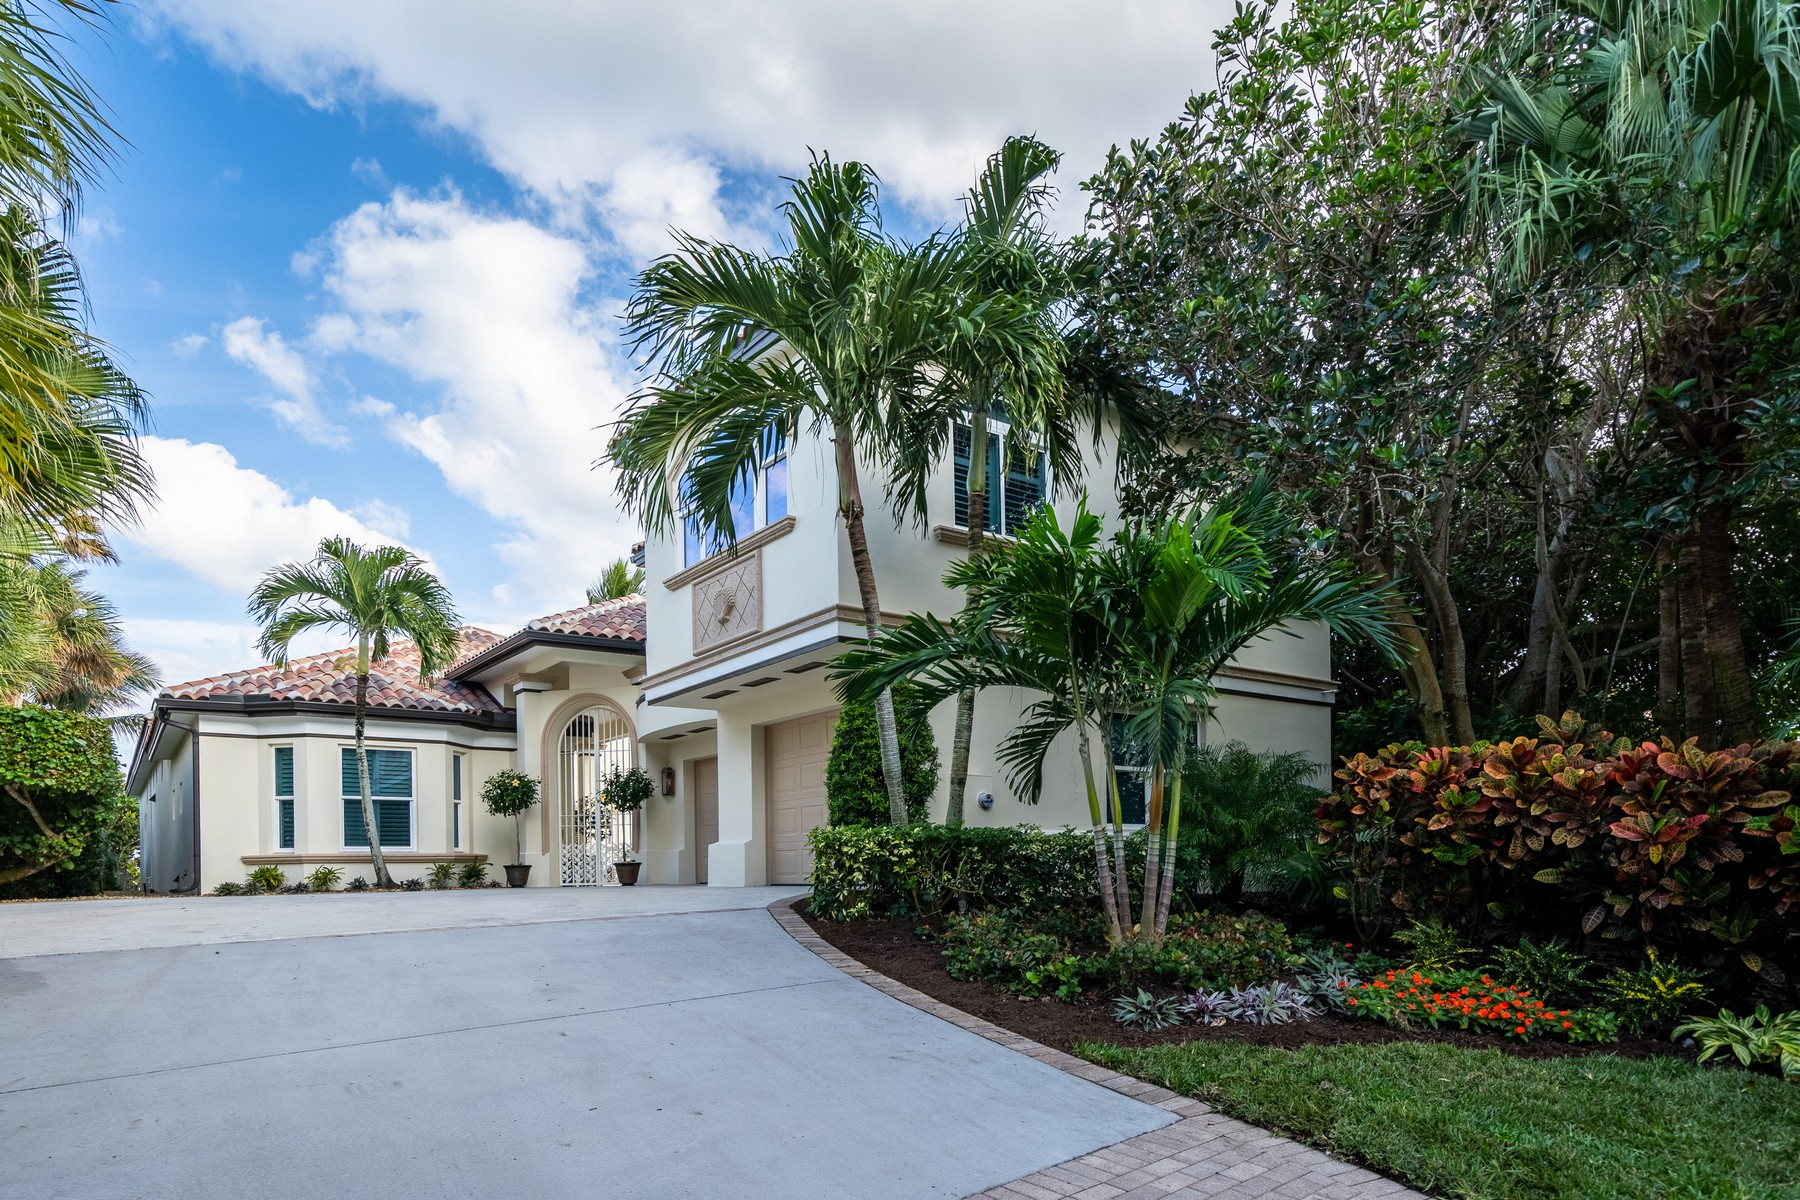 Property for Sale at Stunning Oceanfront Courtyard Home 151 Mariner Beach Lane Vero Beach, Florida 32963 United States